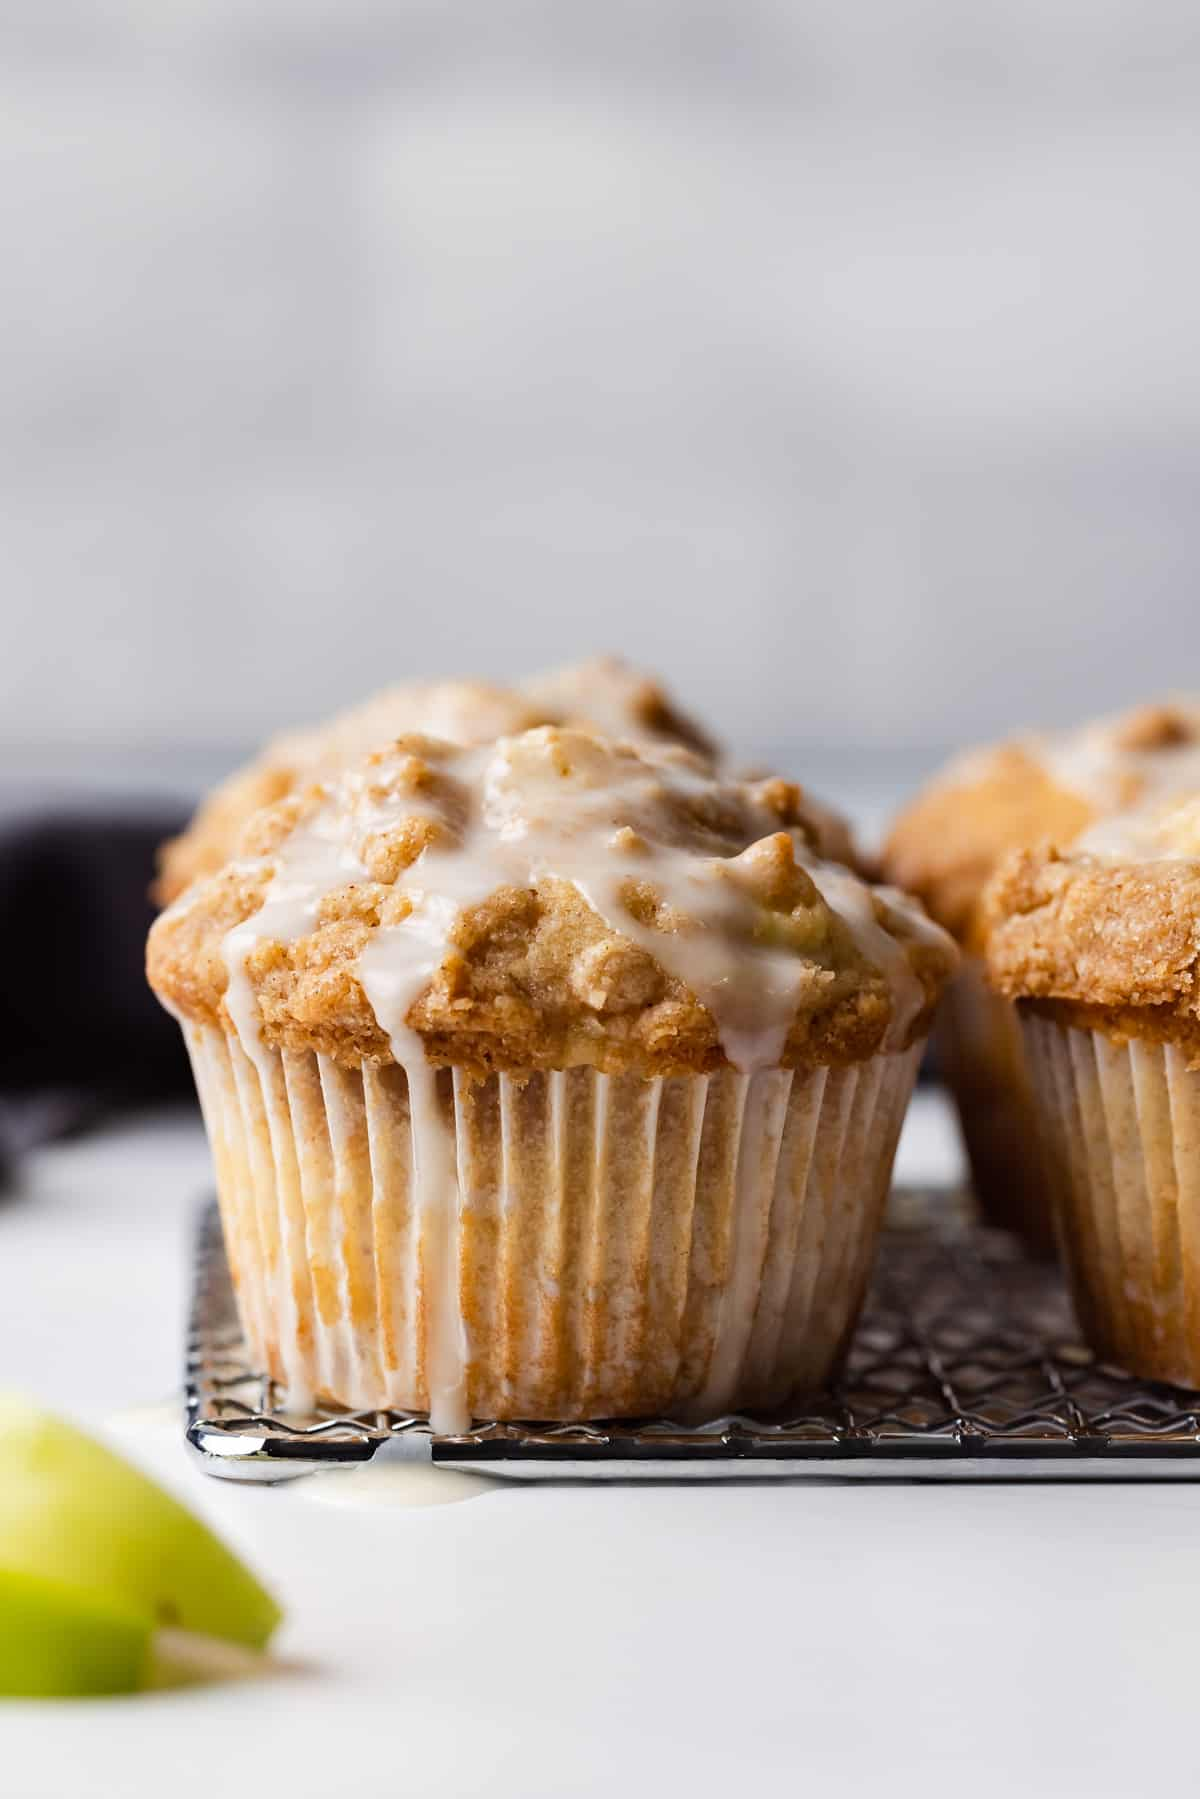 Two apple streusel muffins topped with glaze